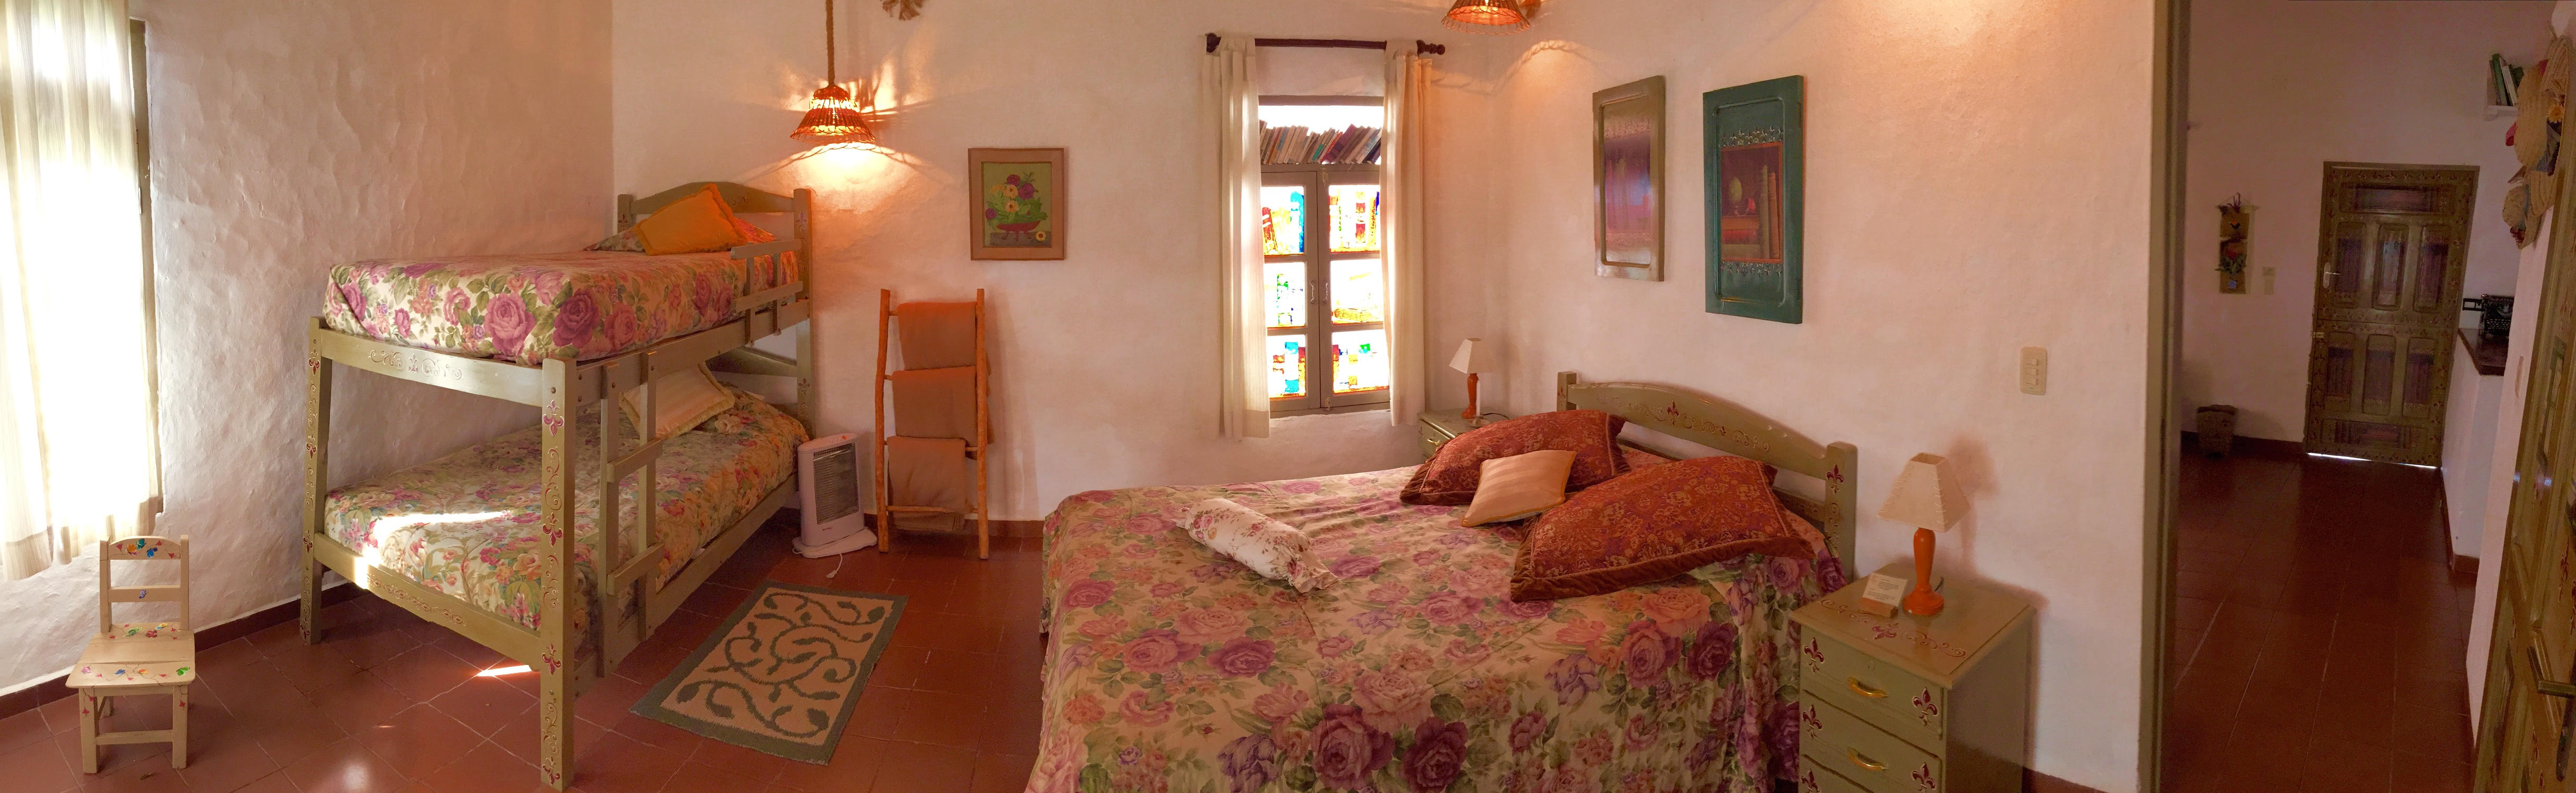 Best Places to Stay Samaipata Bolivia | El Pueblito